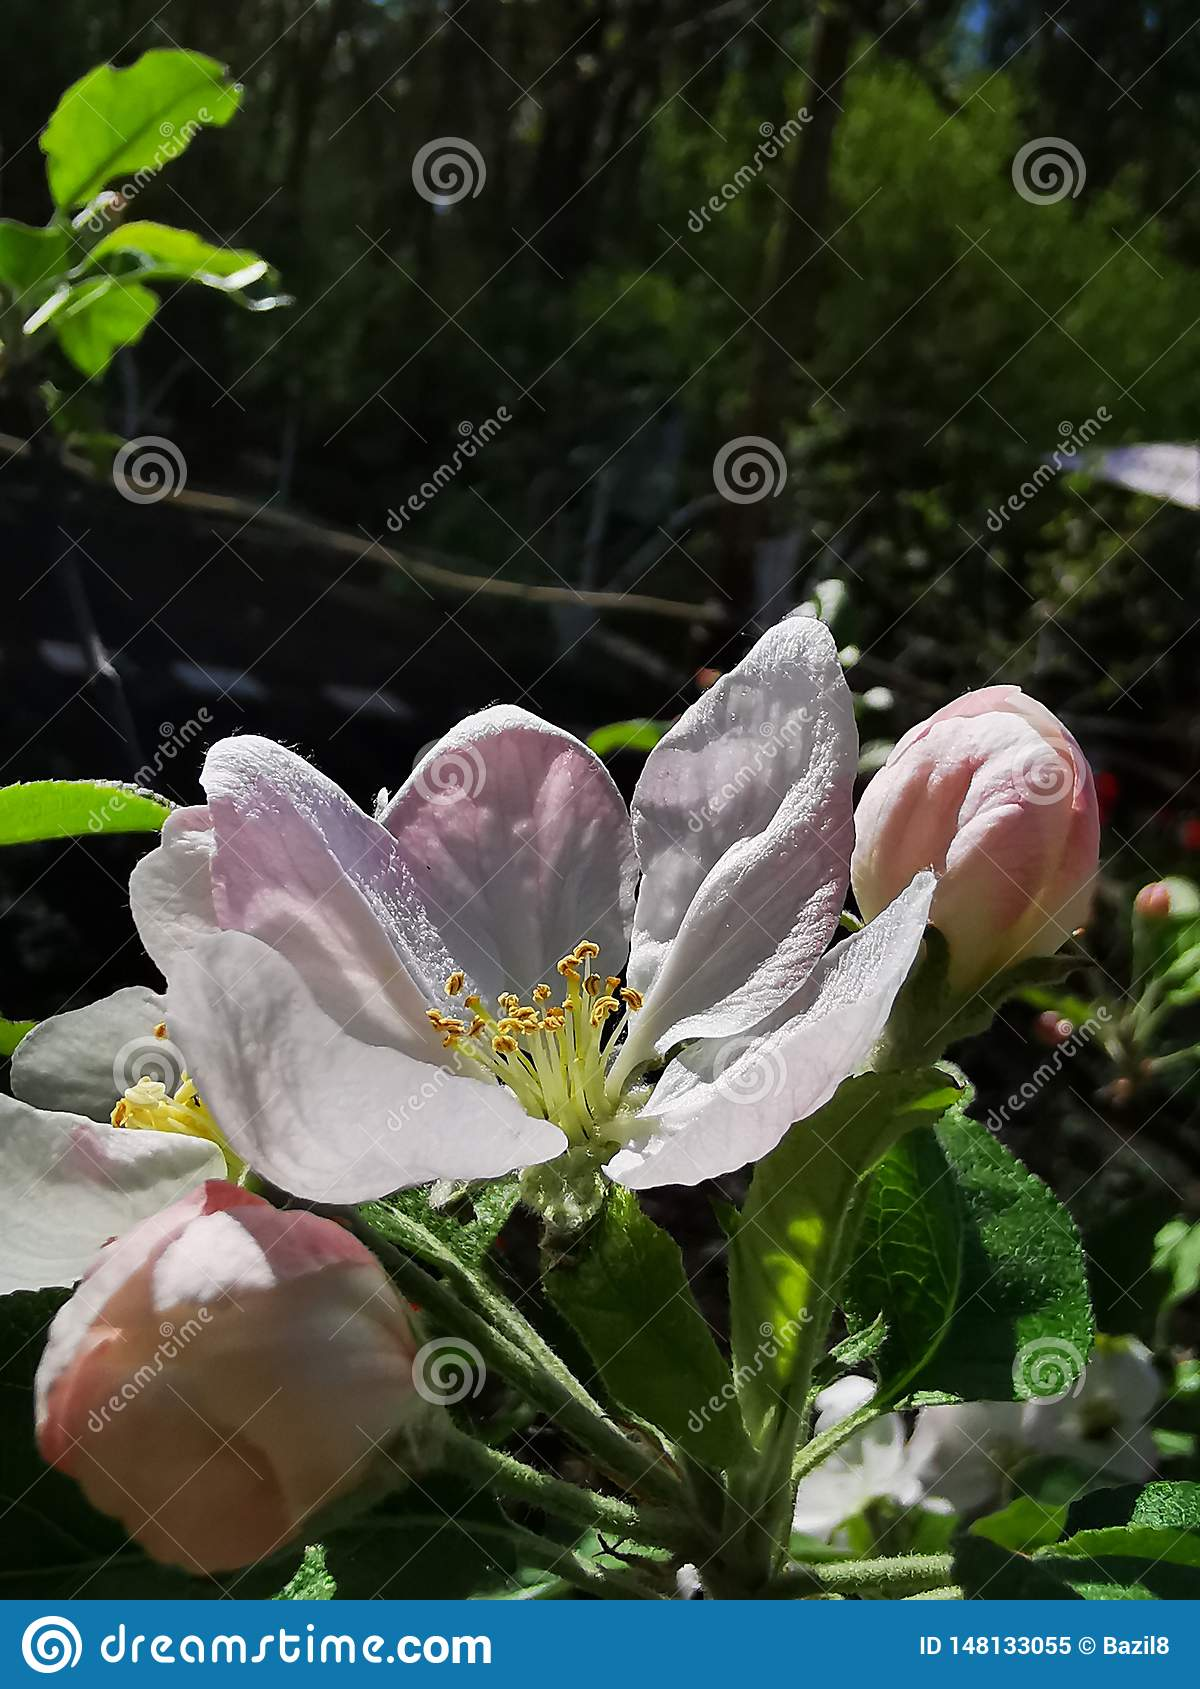 Large apple flower